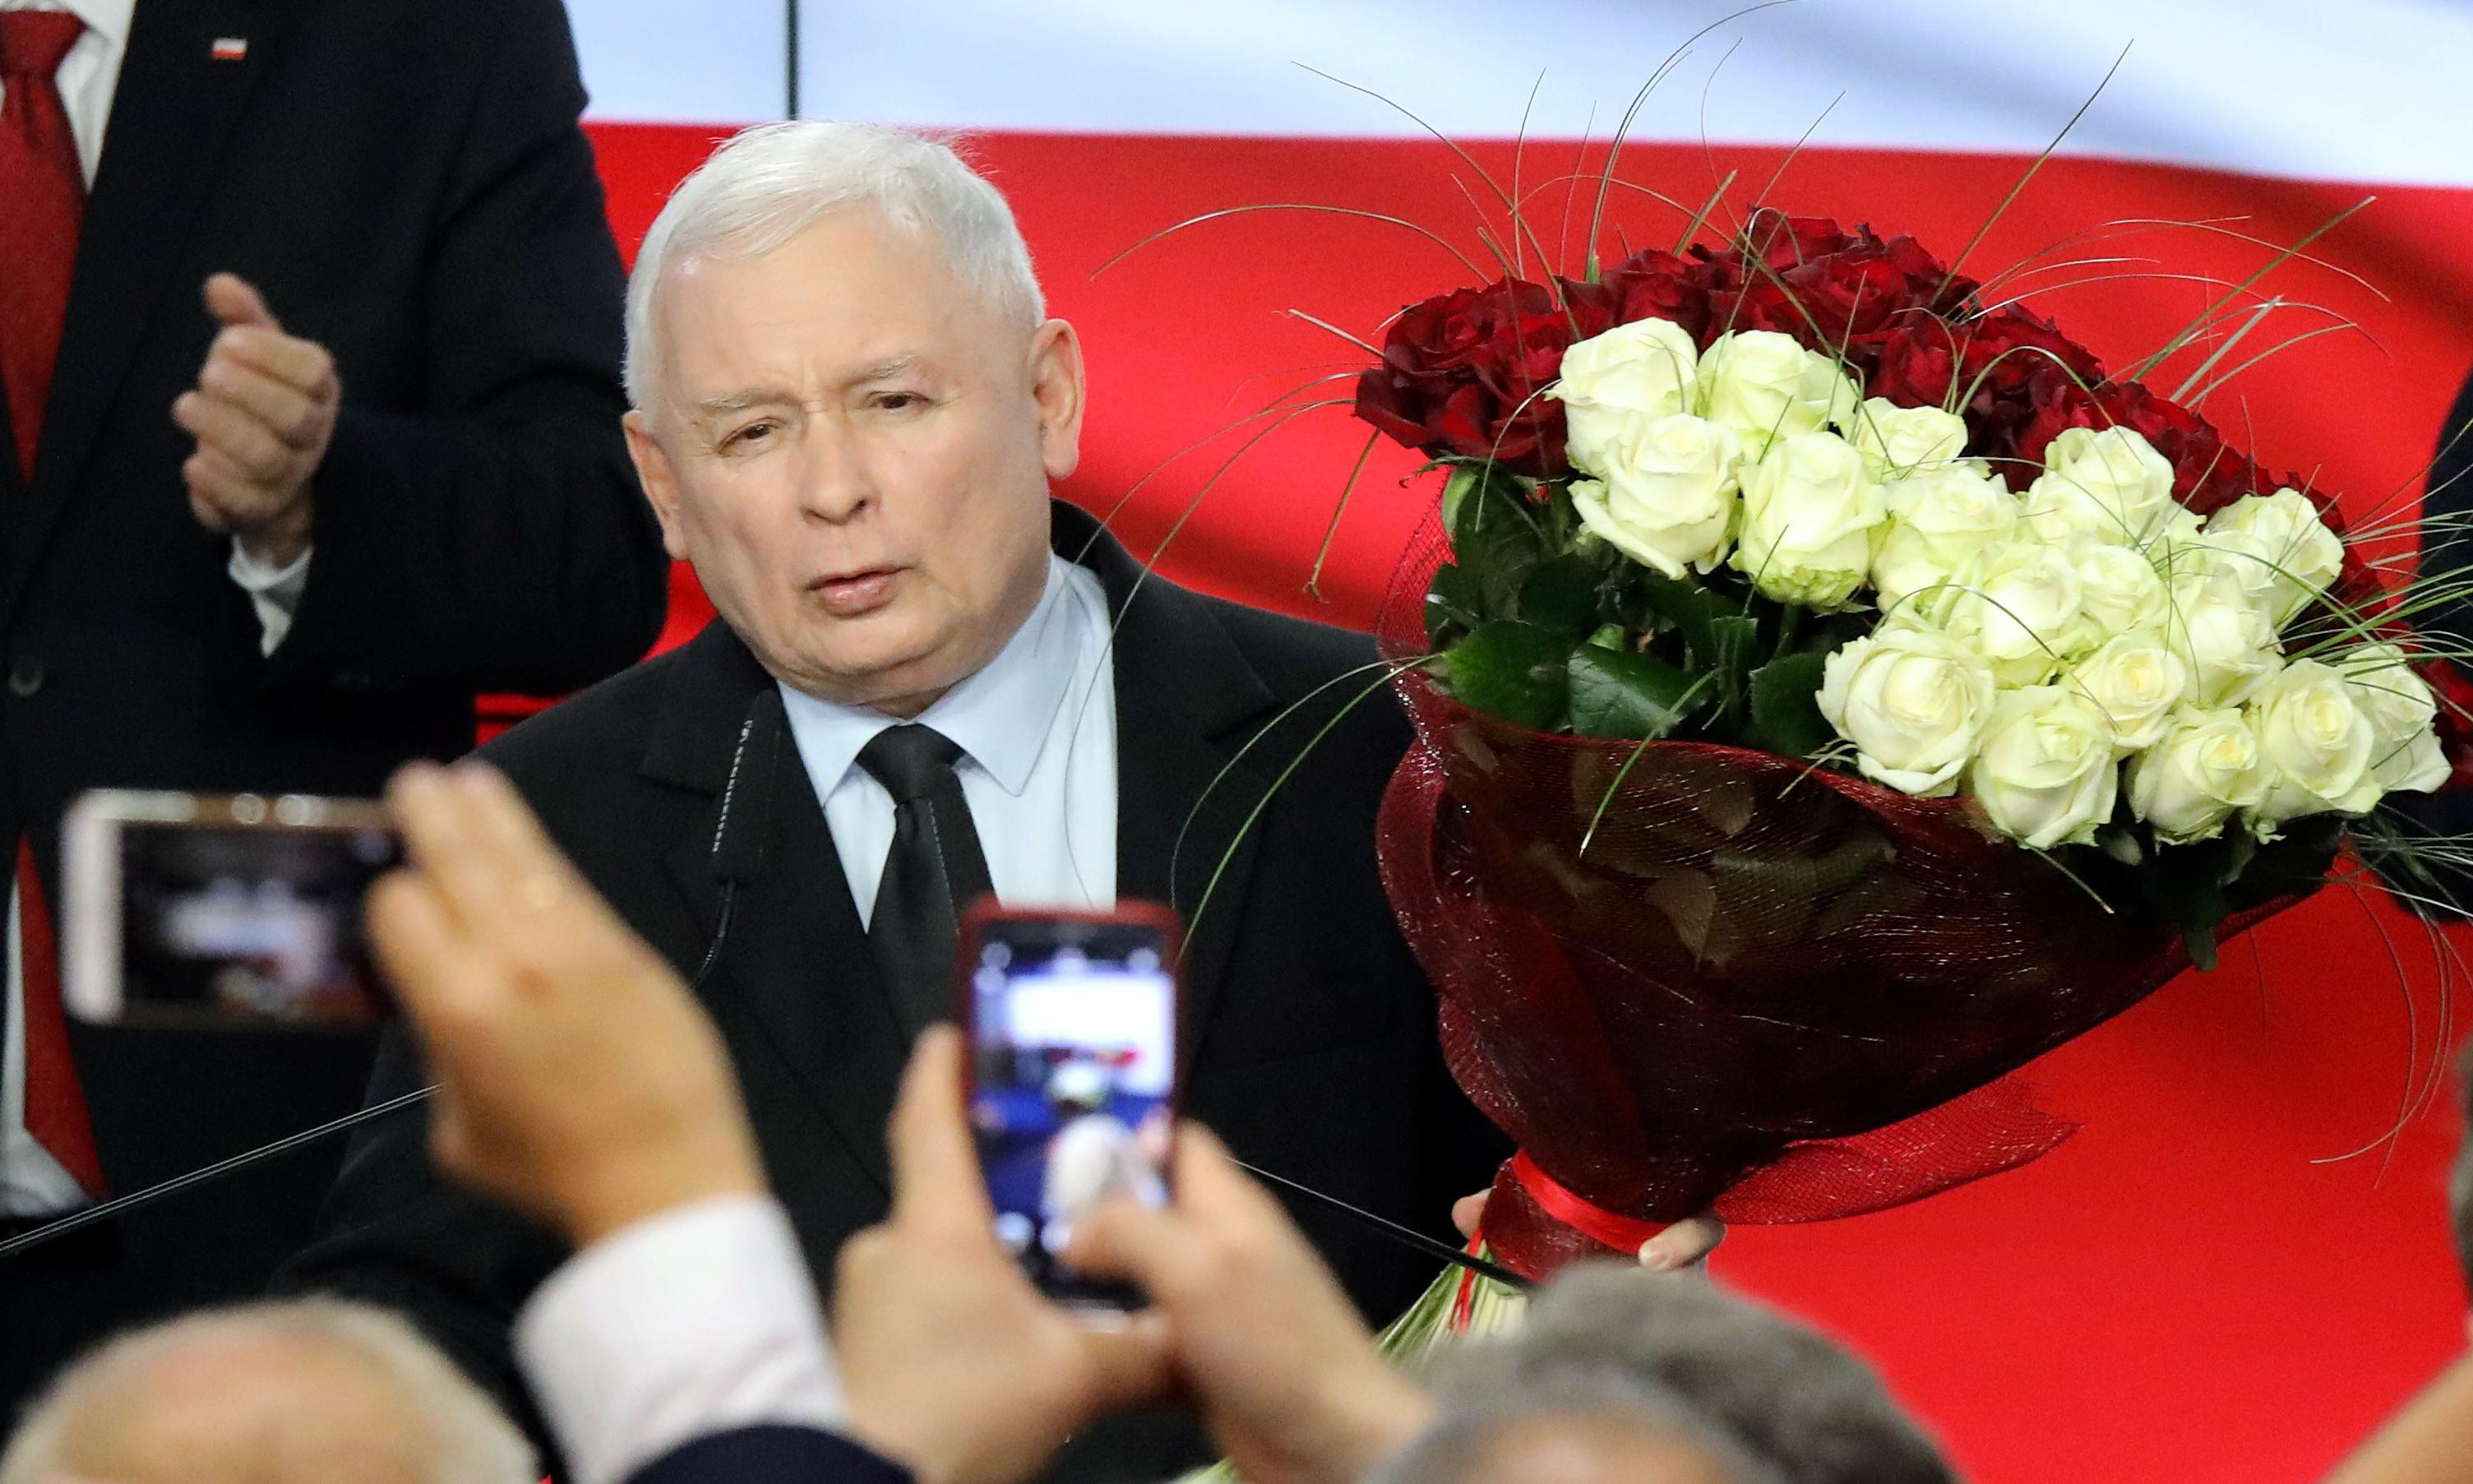 Poland's populist Law and Justice party increases its majority